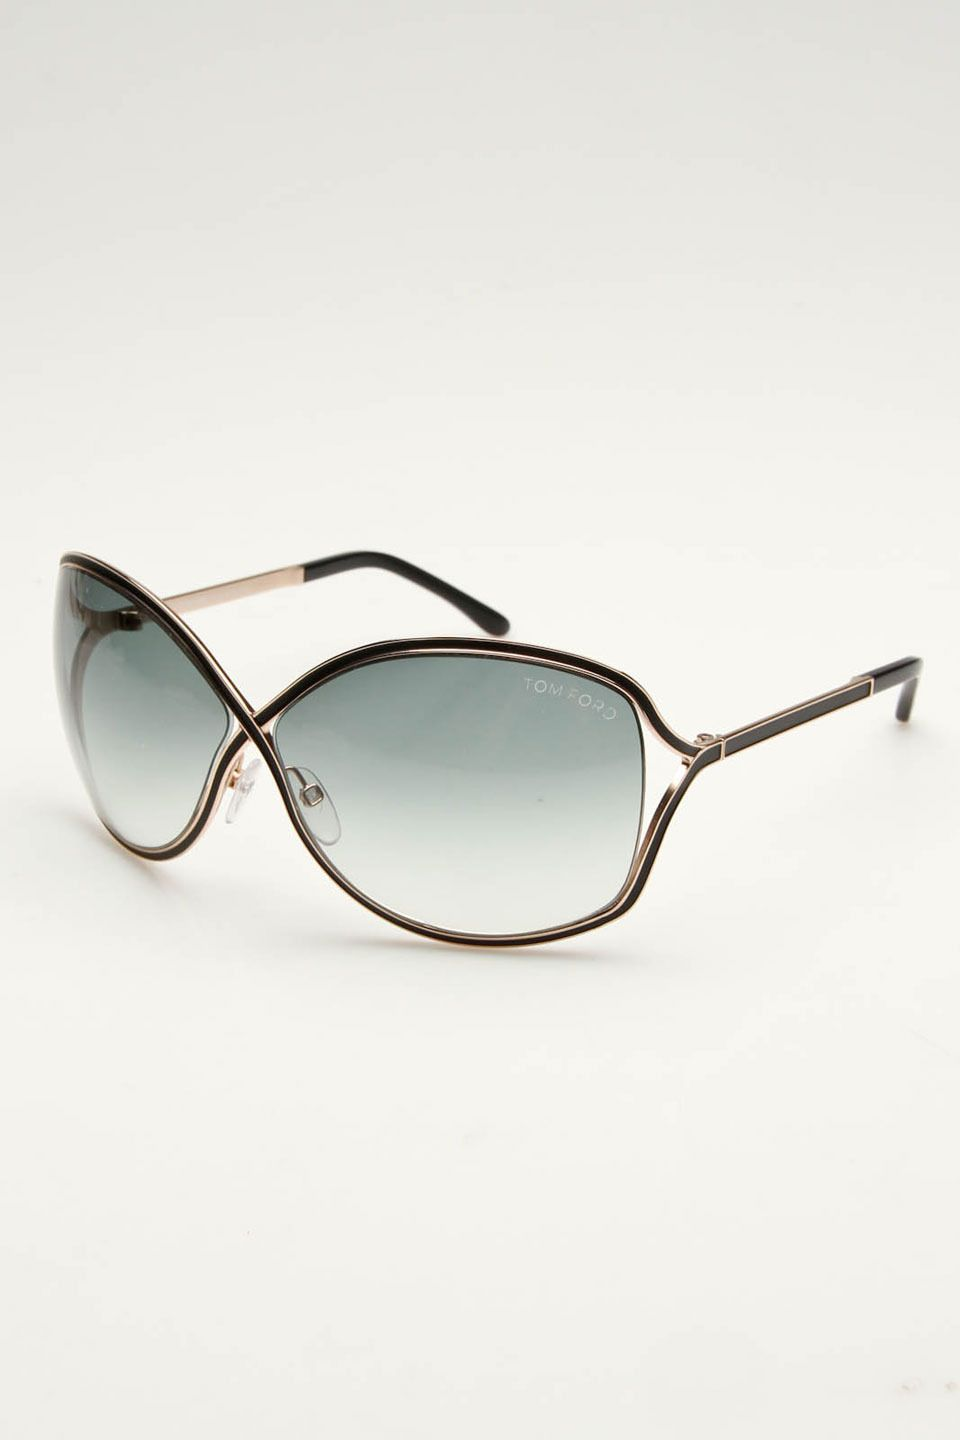 Pinterest: @ndeyepins – Tom Ford sunglasses- need these